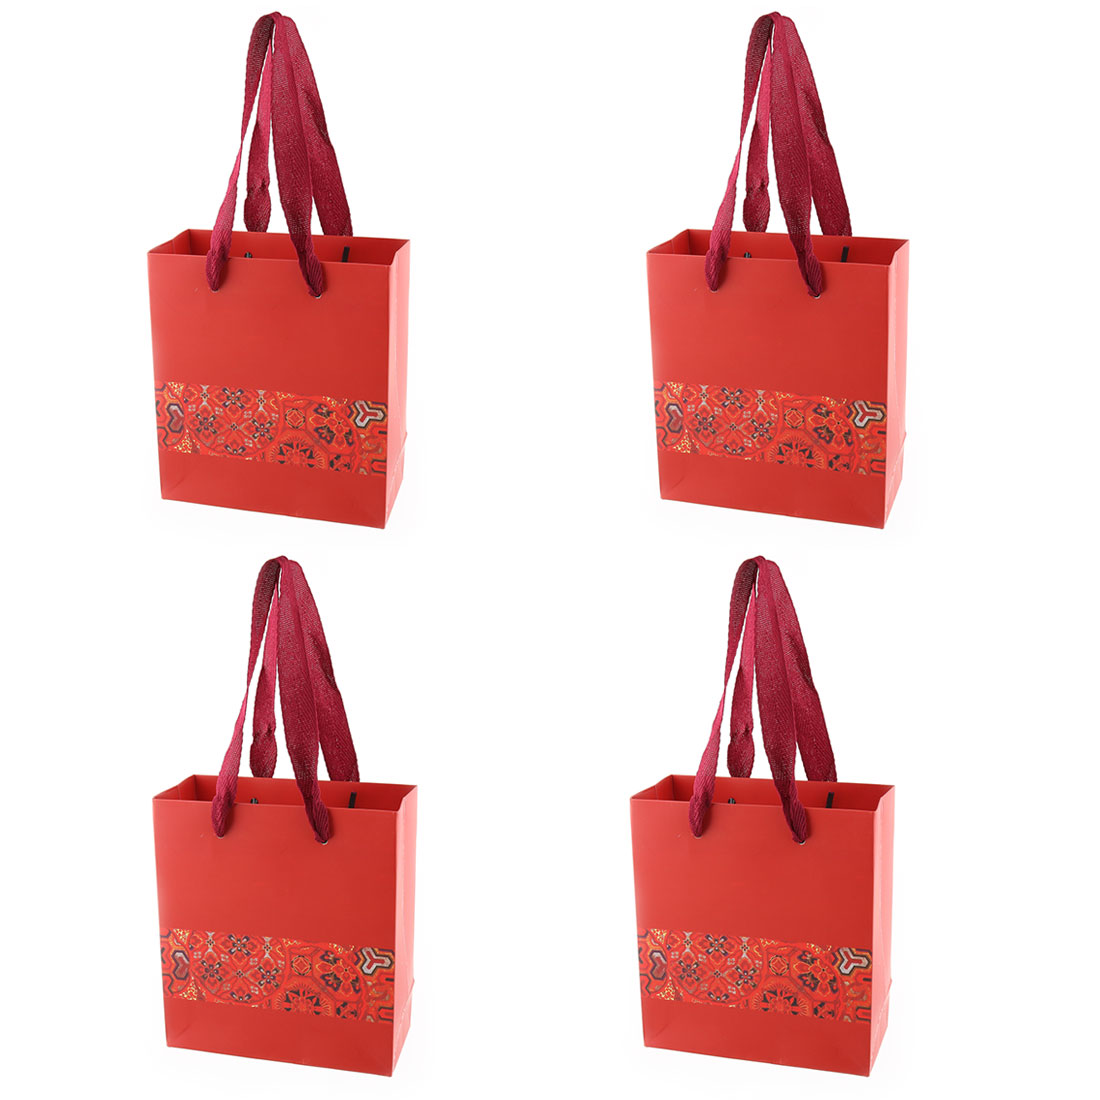 Paper Flower Printed Birthday Wedding Valentine's Day Gift Bags Holder Red 4pcs